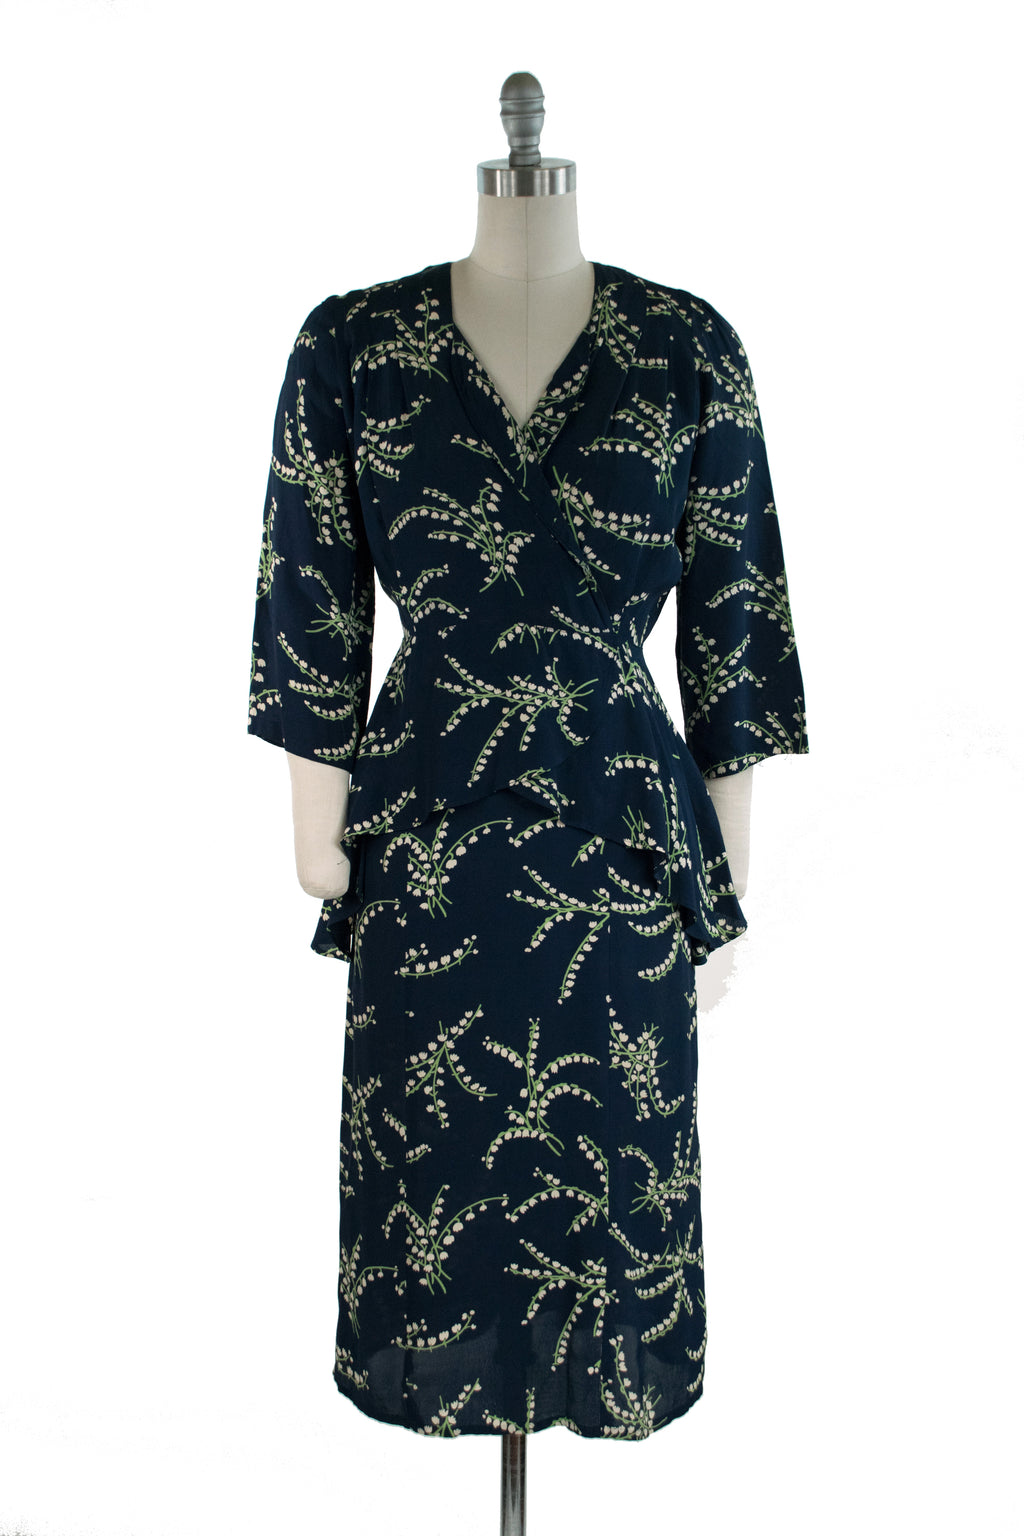 Gorgeous 1940s Lily of the Valley Rayon Peplum Dress